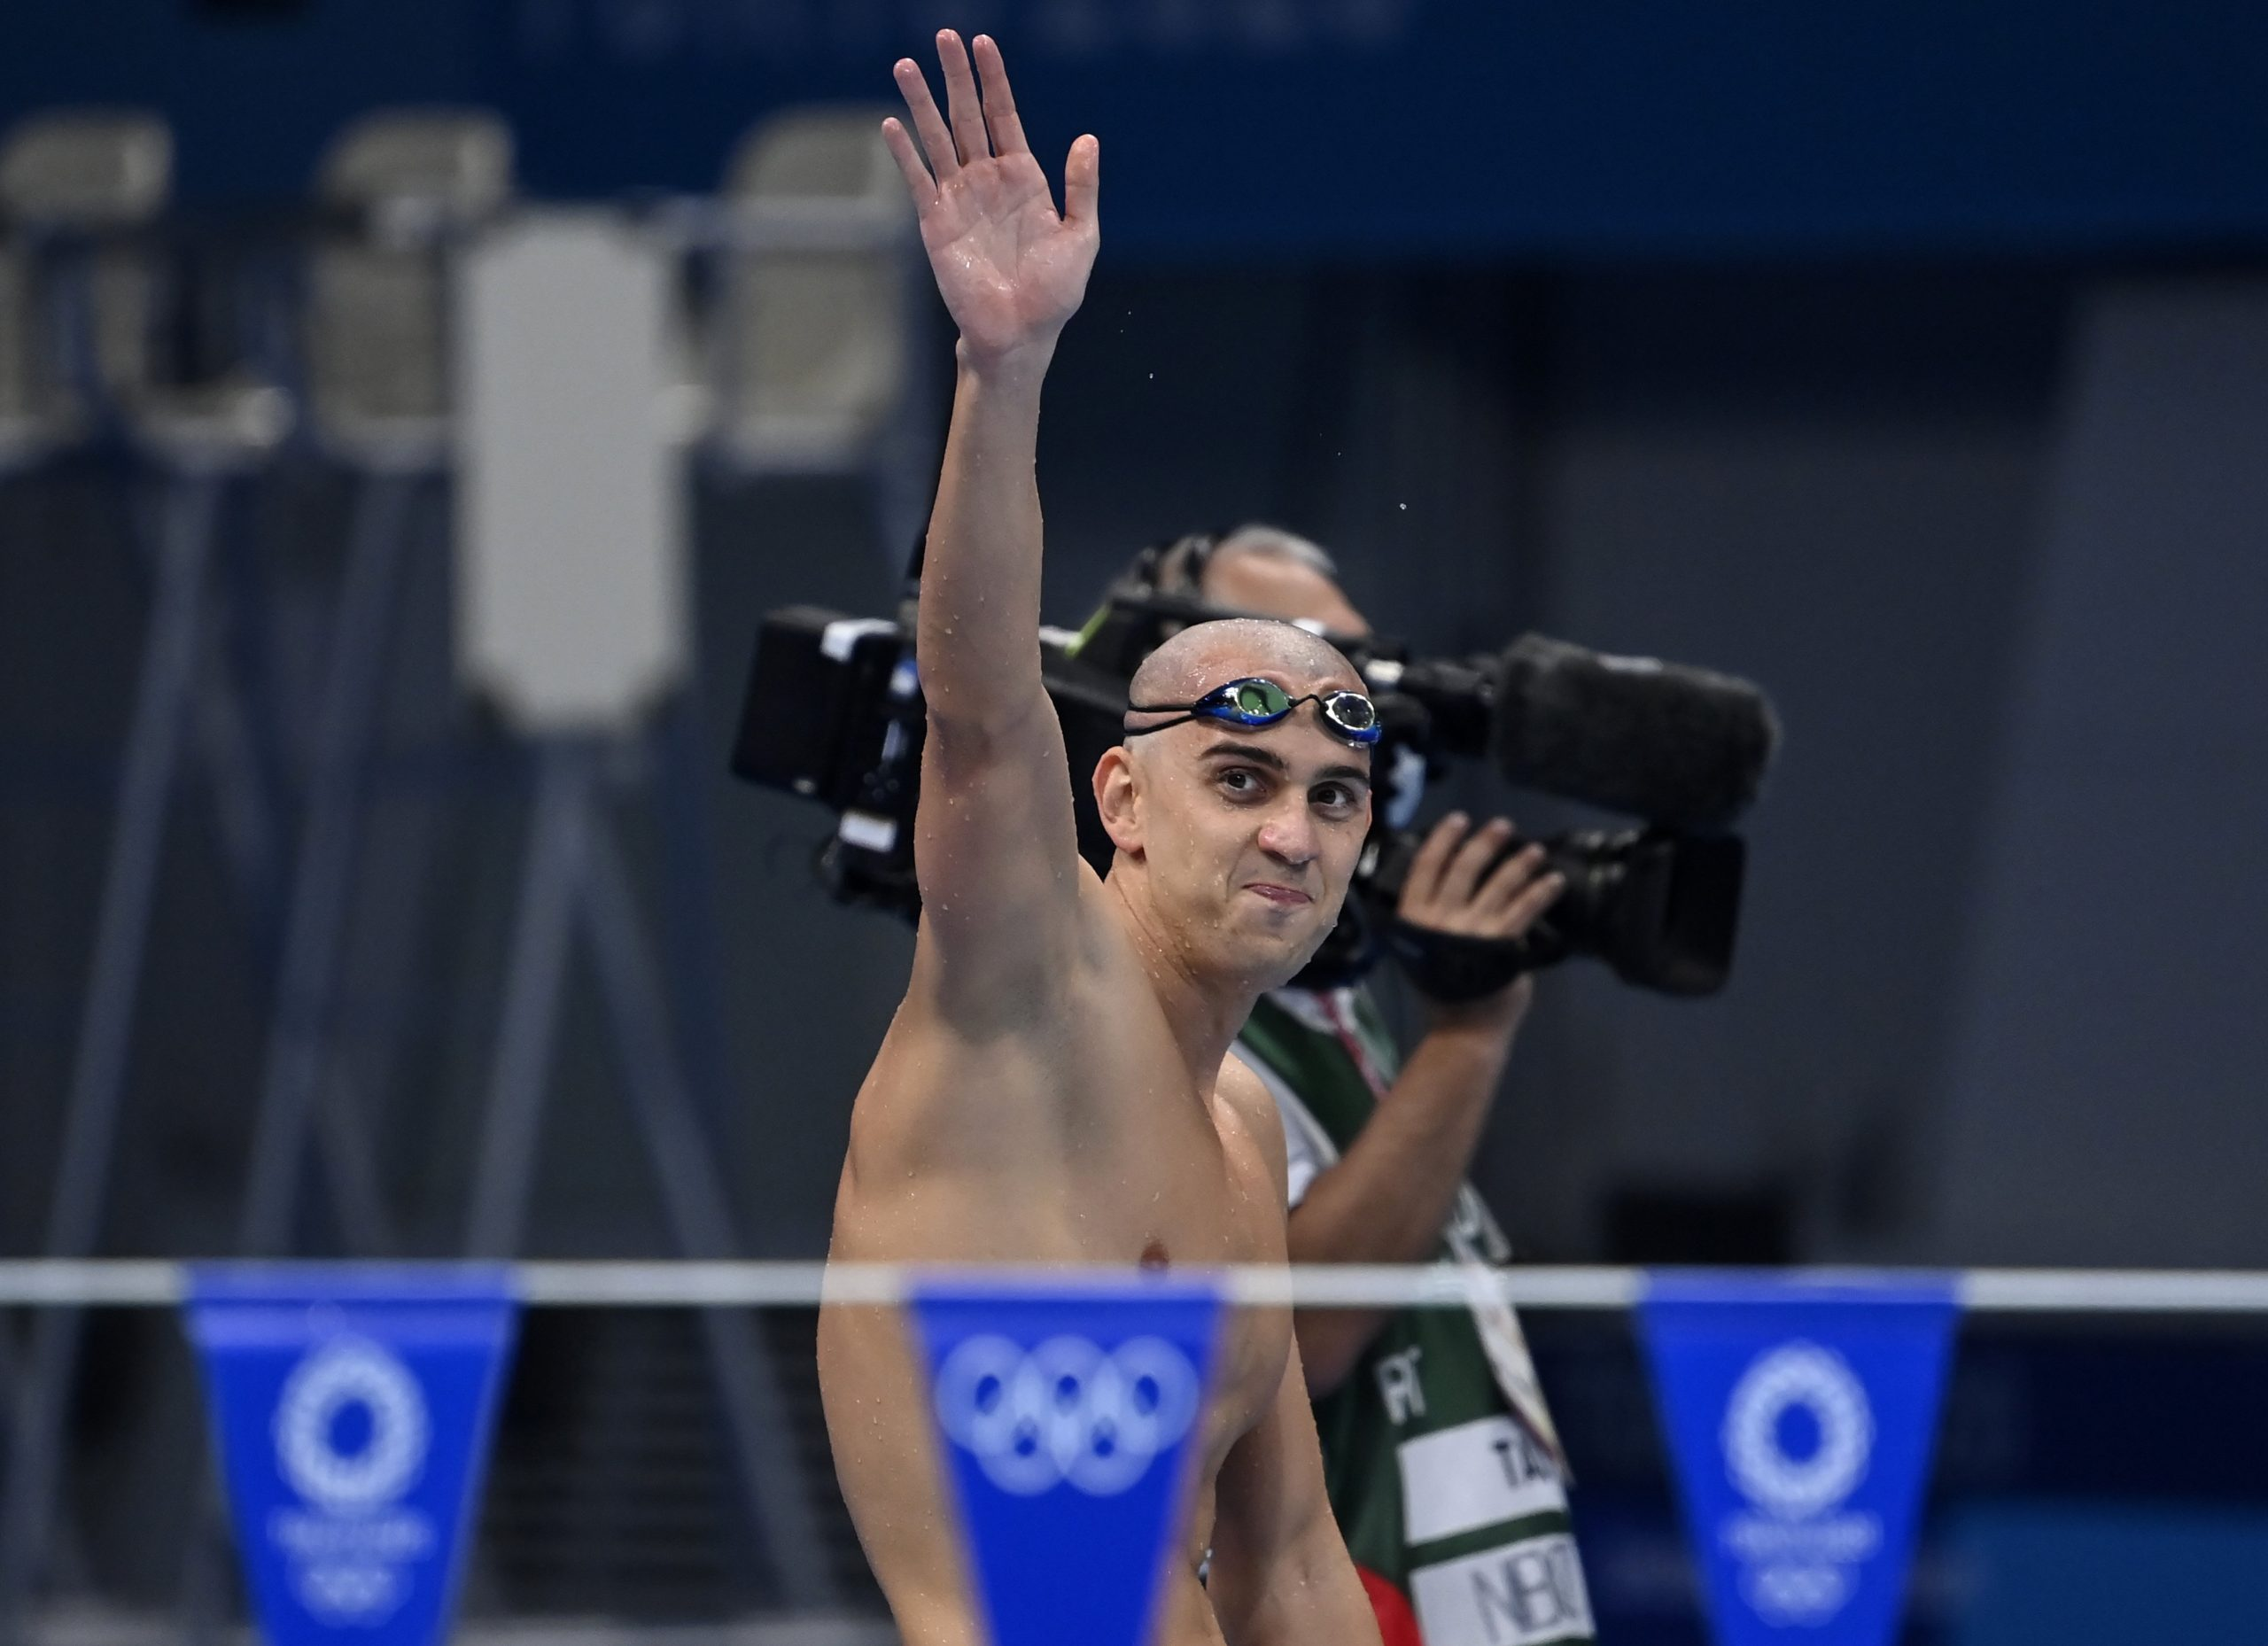 László Cseh Finishes Wonderful Competitive Career With Olympic Final